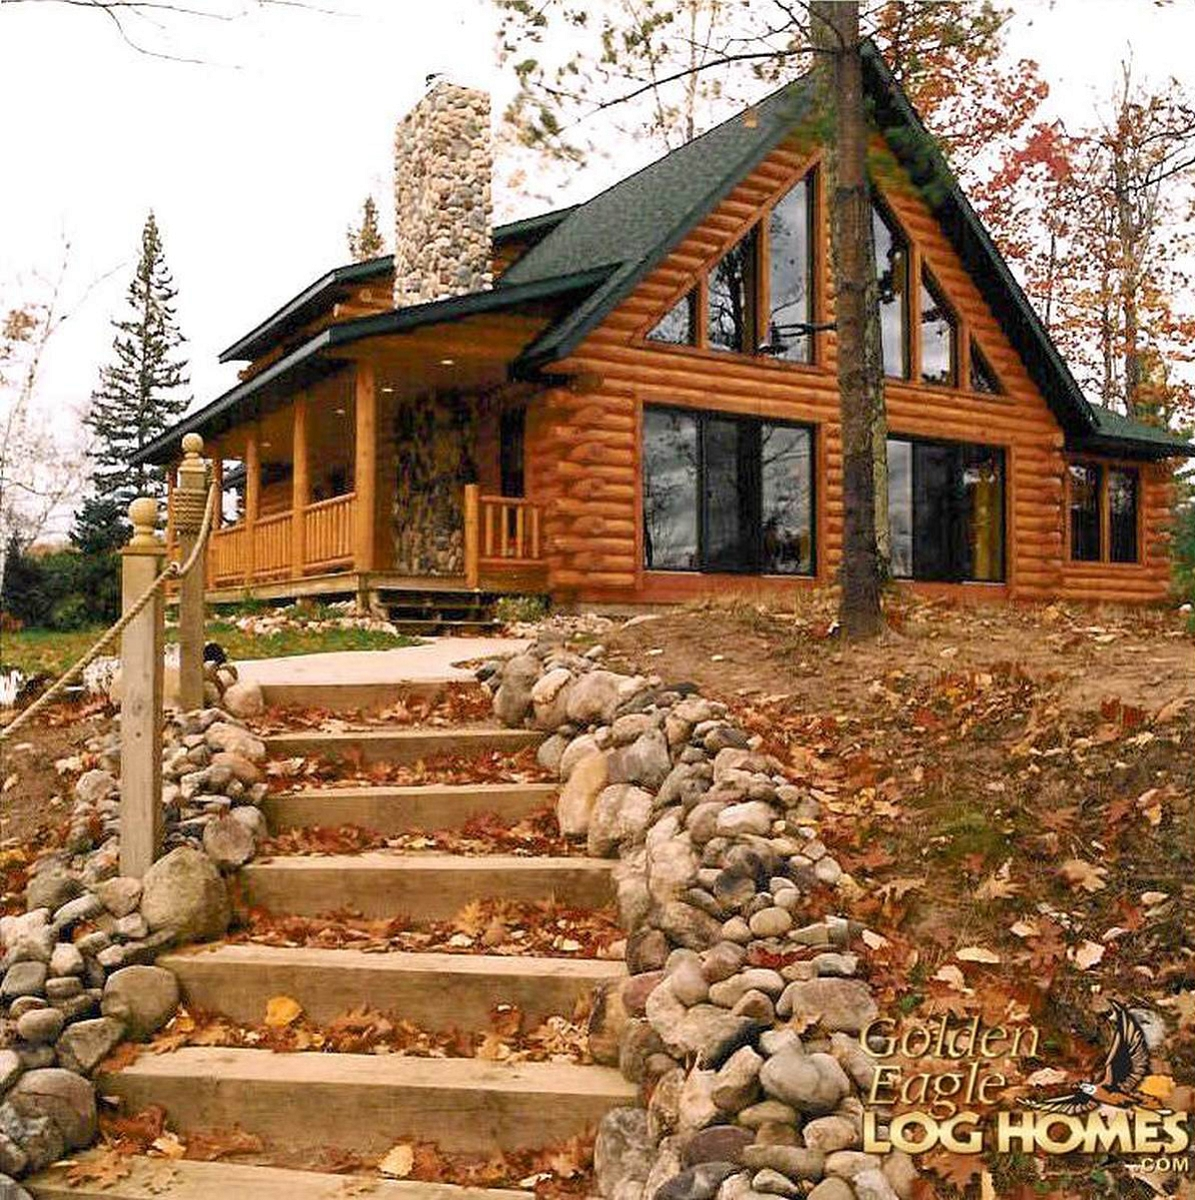 Golden eagle log and timber homes log home cabin for Cabin designs